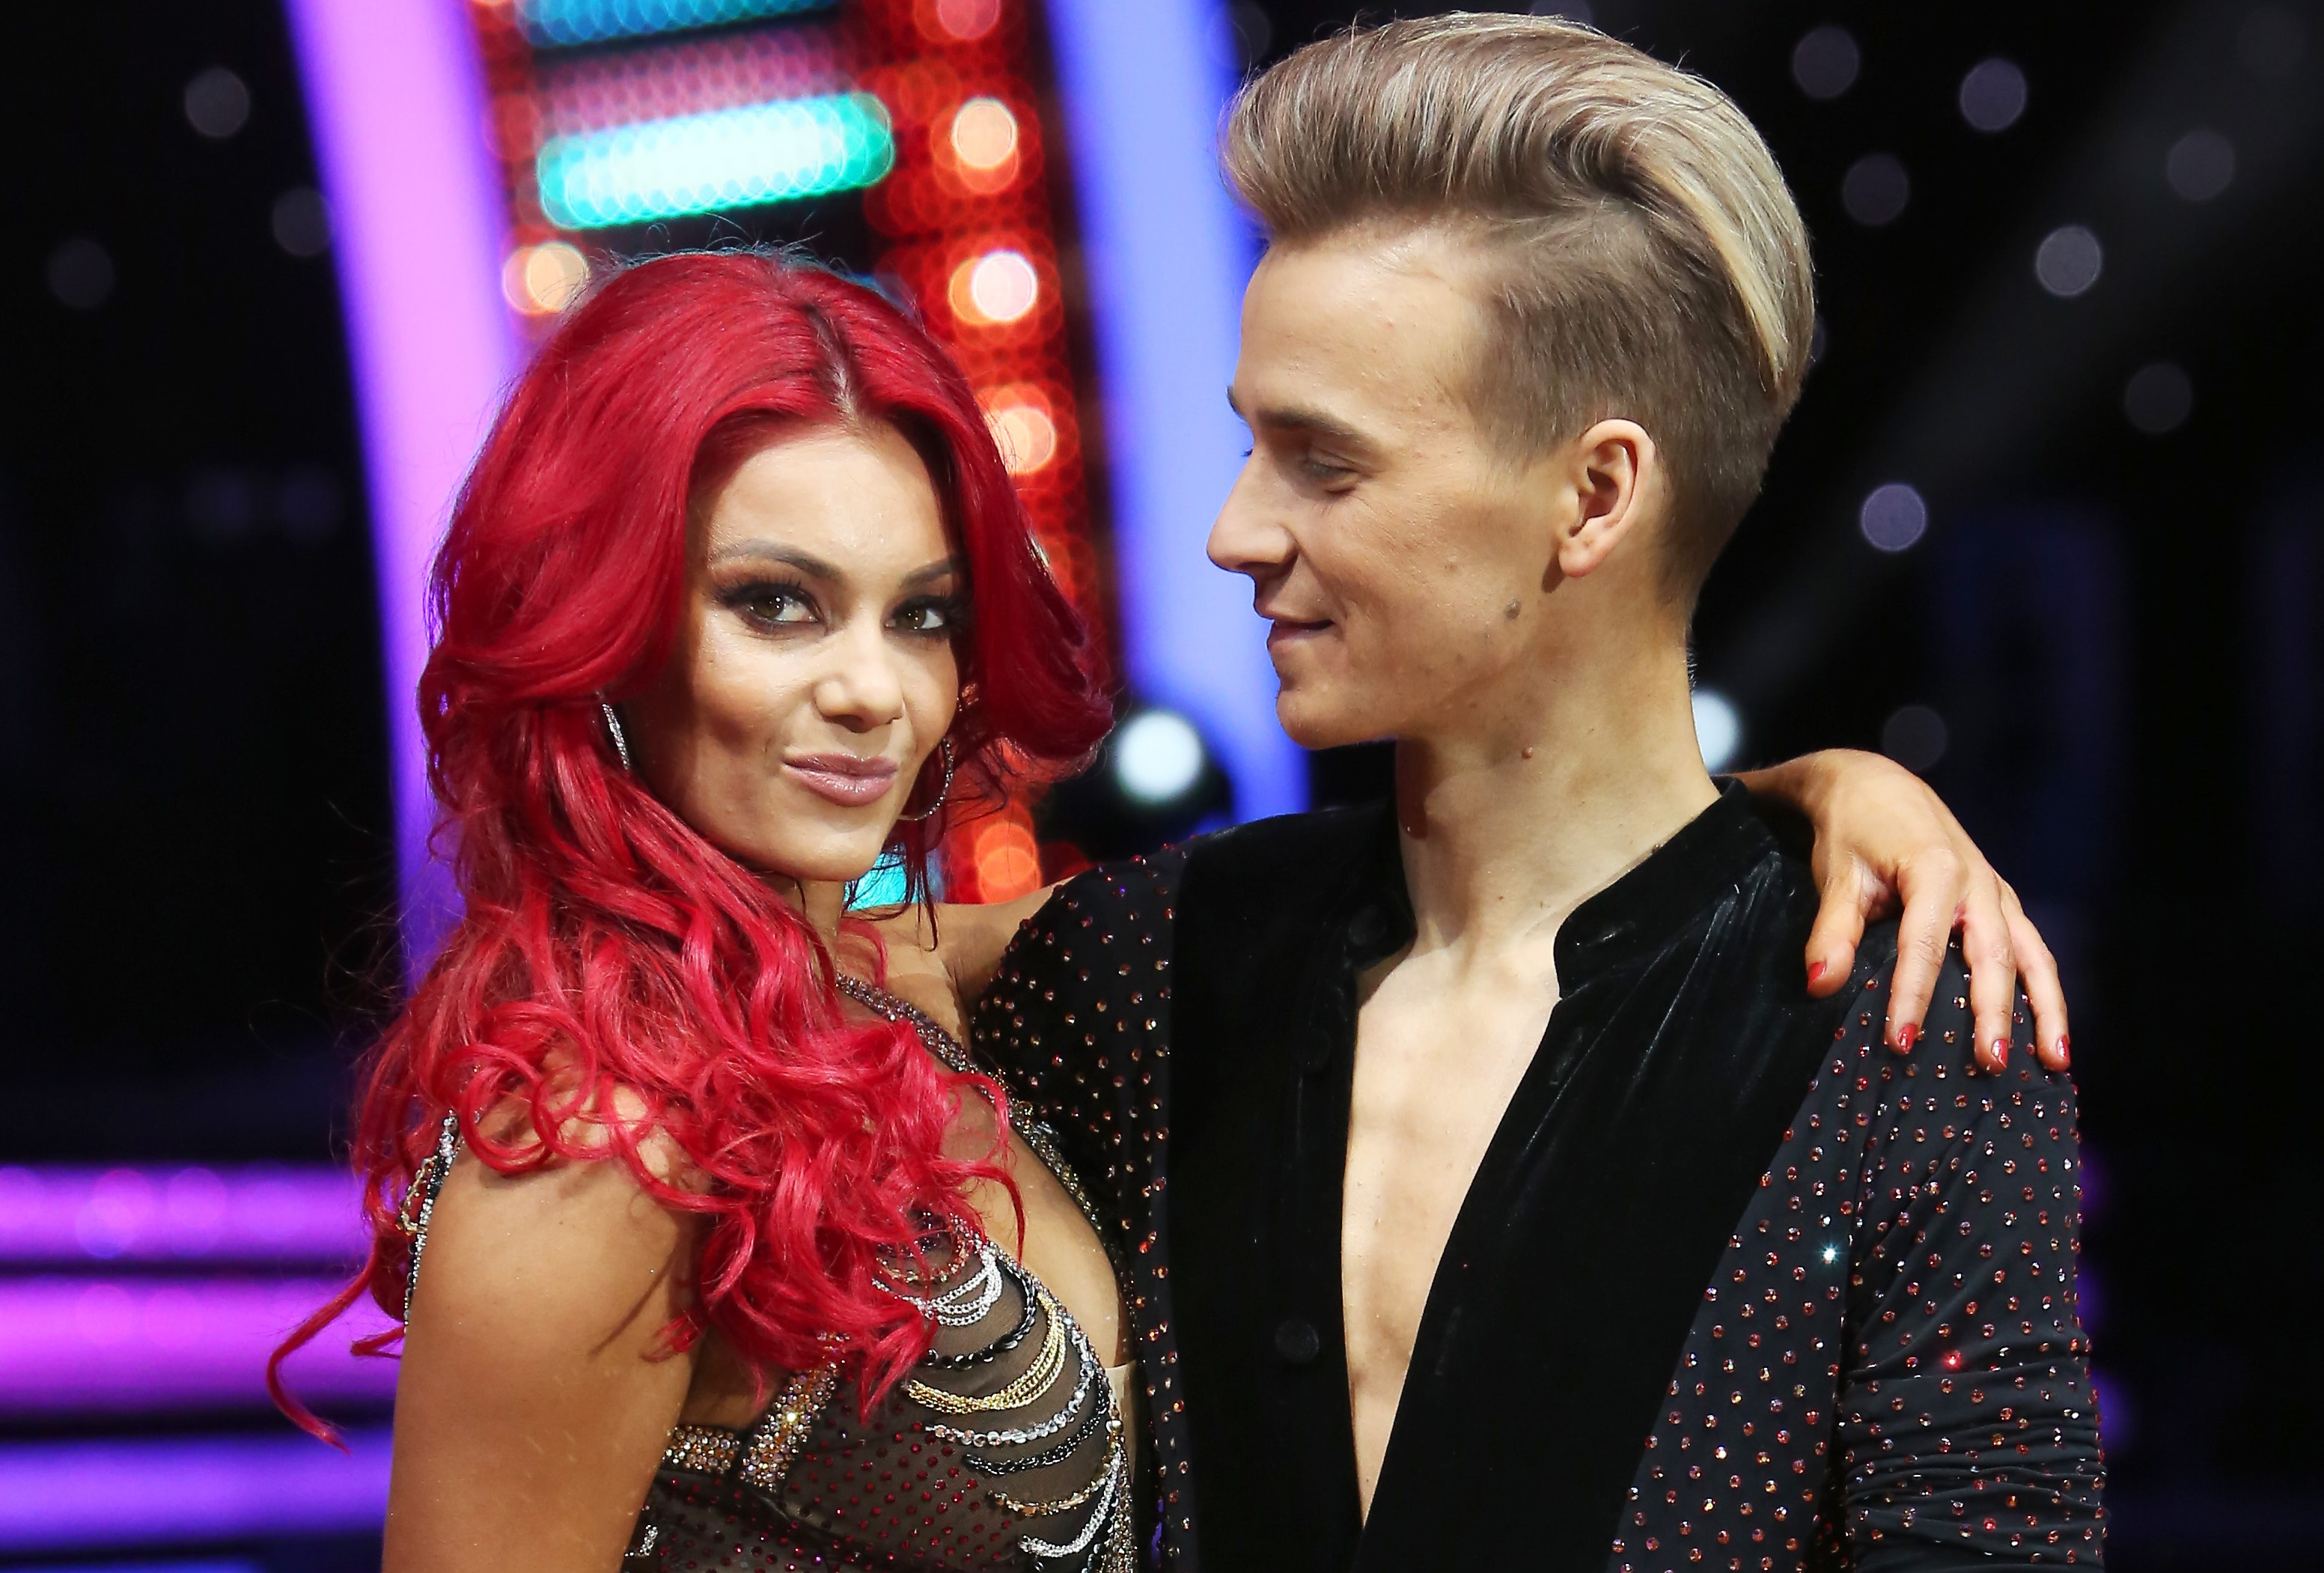 Strictly couple Dianne Buswell and Joe Sugg 'fall out with co-stars' during tour